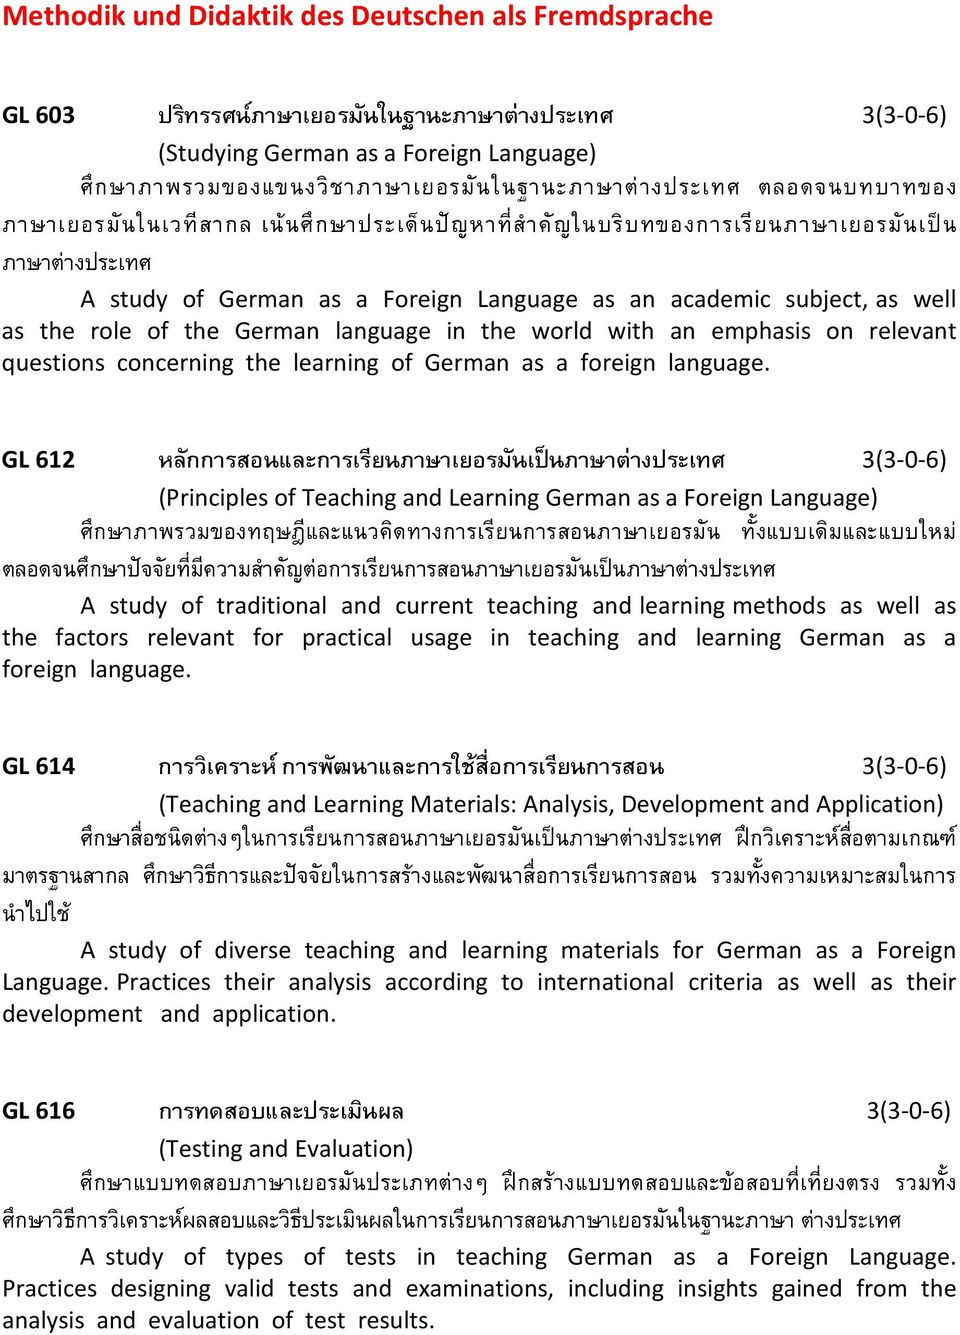 GL 612 กก ก (-0-6) (Principles of Teaching and Learning German as a Foreign Language) ก ก ก ก ก ก A study of traditional and current teaching and learning methods as well as the factors relevant for